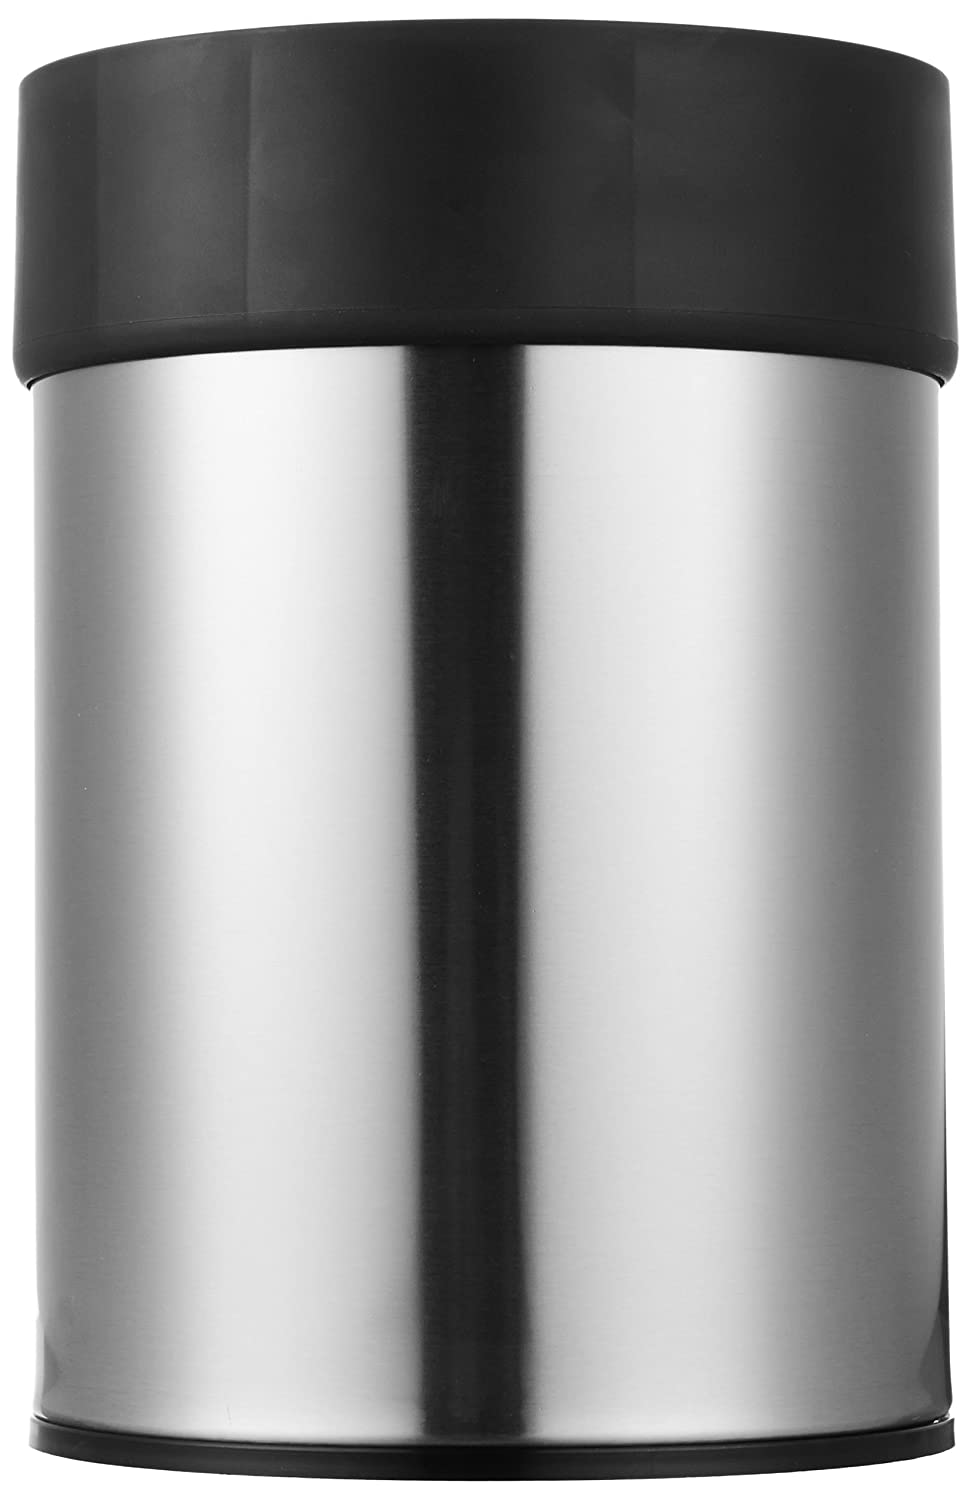 AmazonBasics Stainless Steel Waste Can - Black